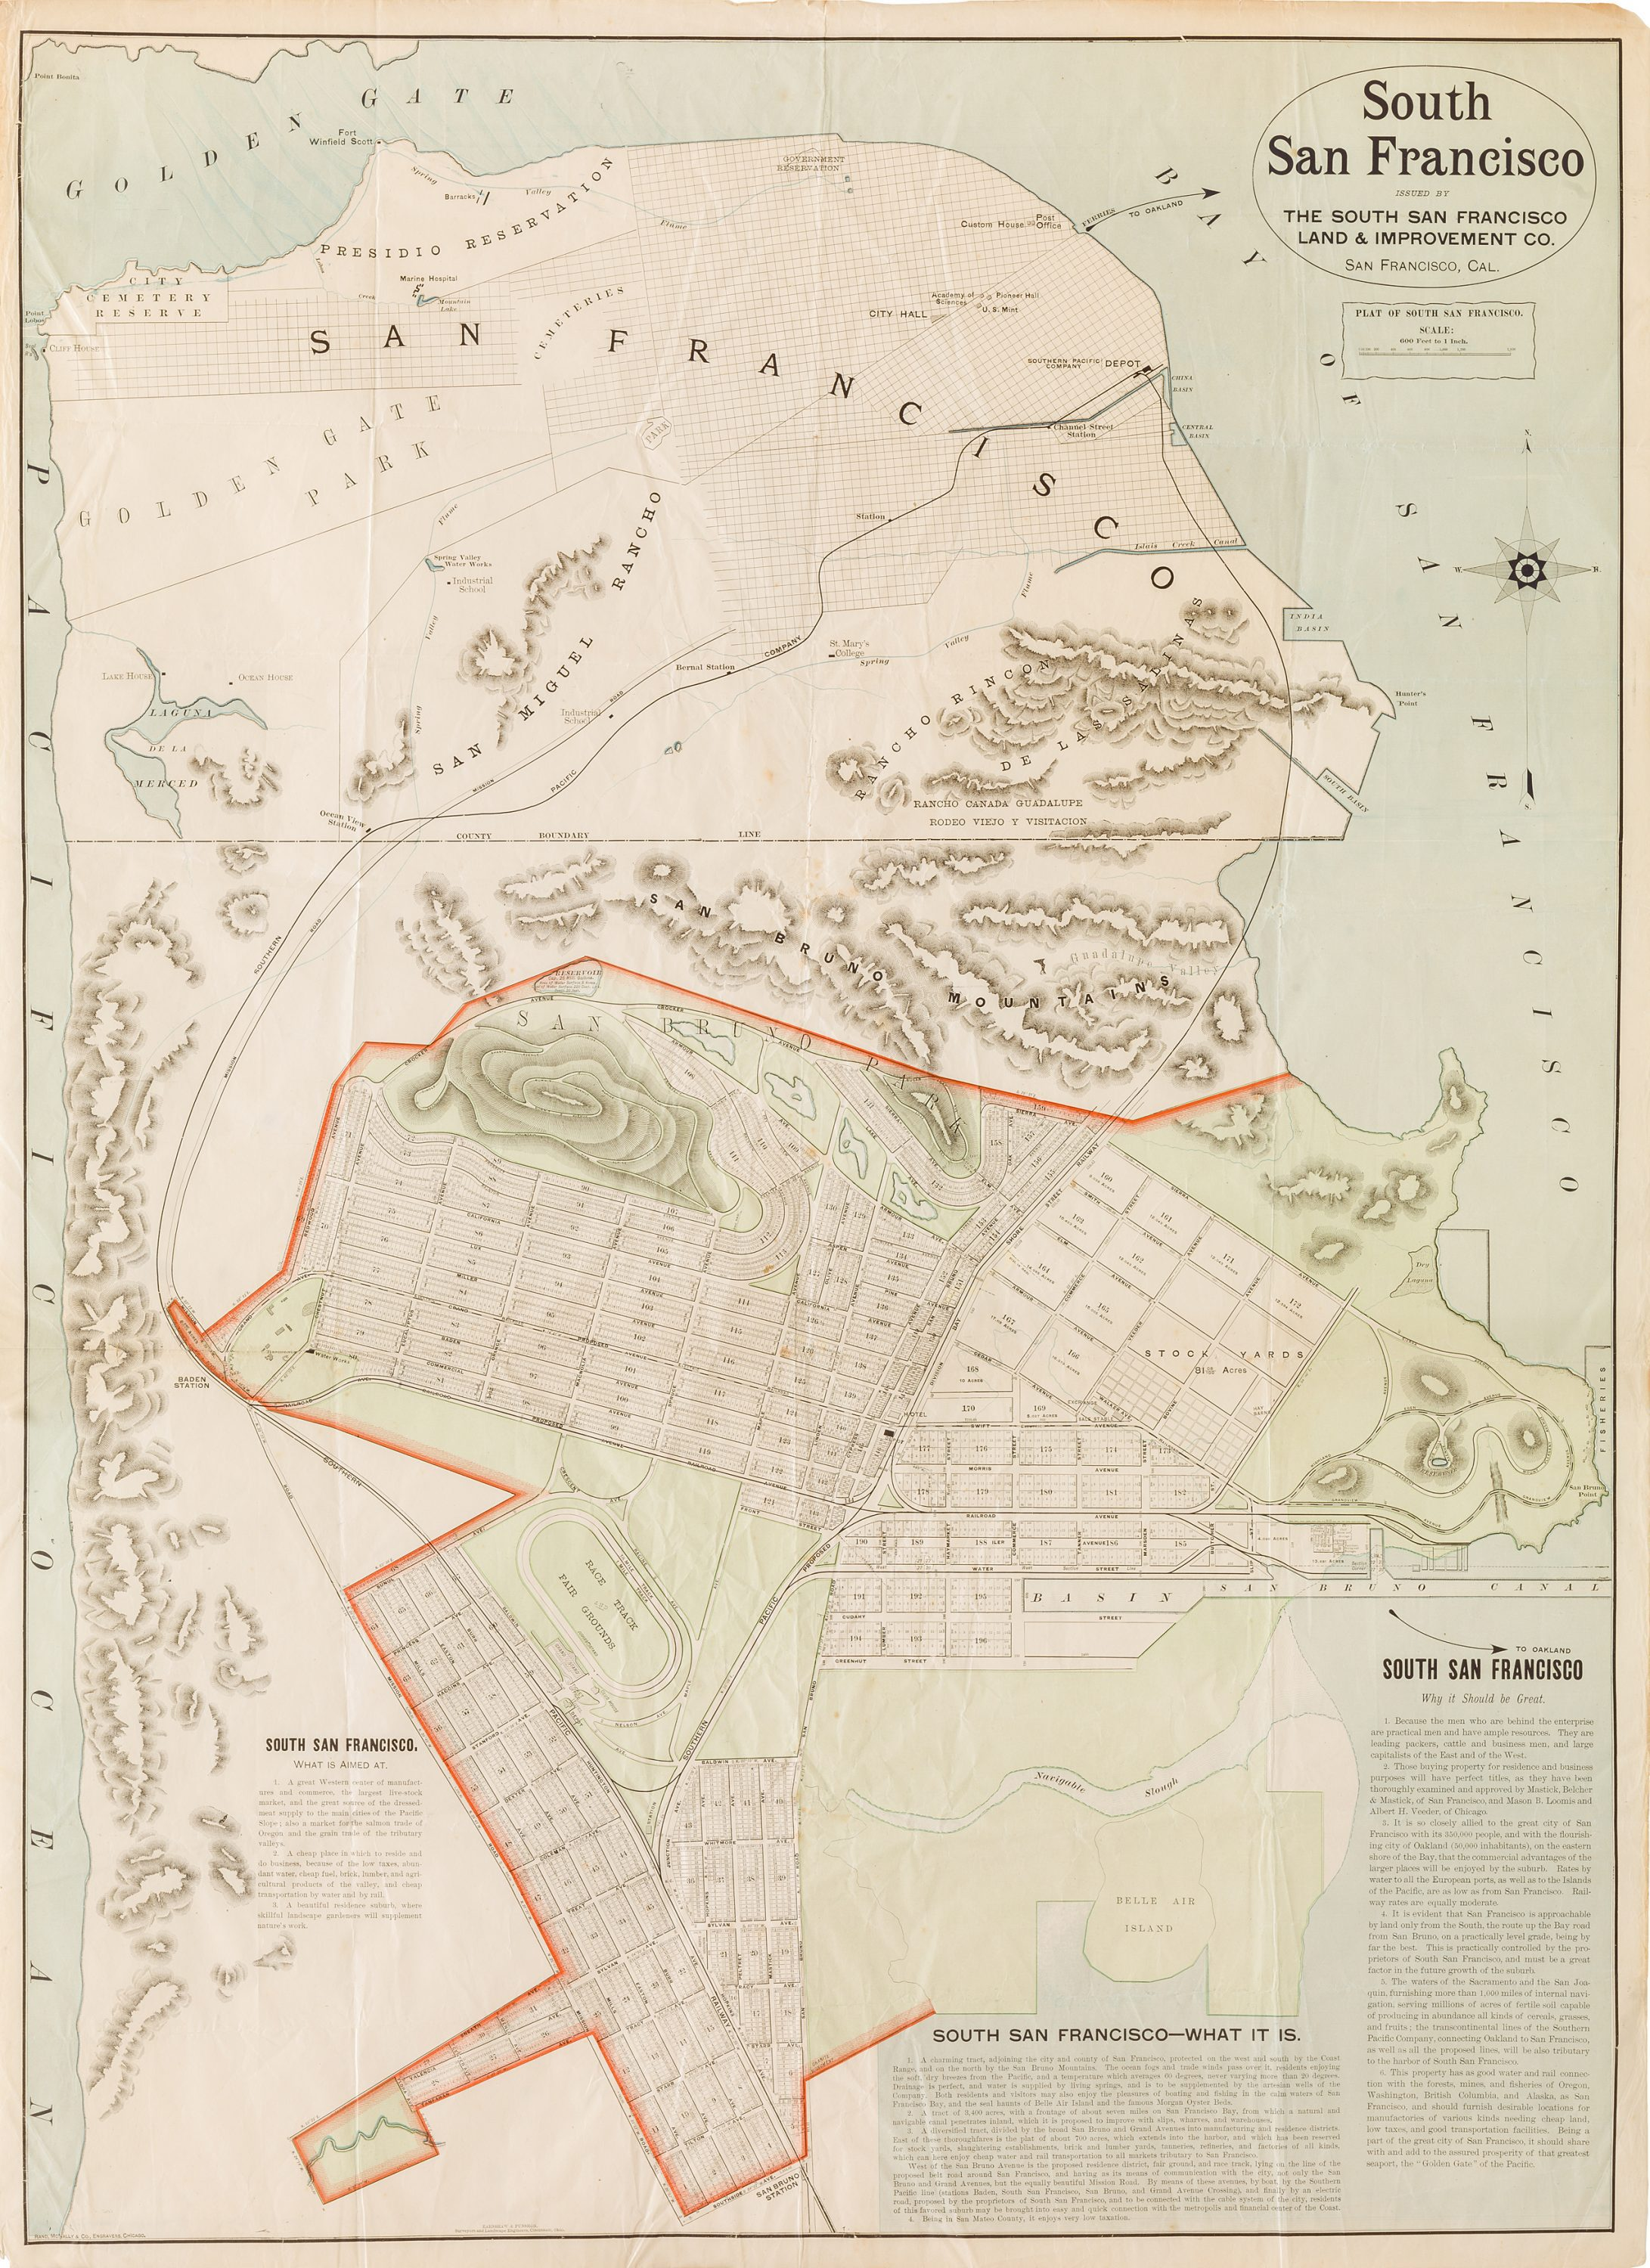 Rand McNally map promoting the development of South San Francisco